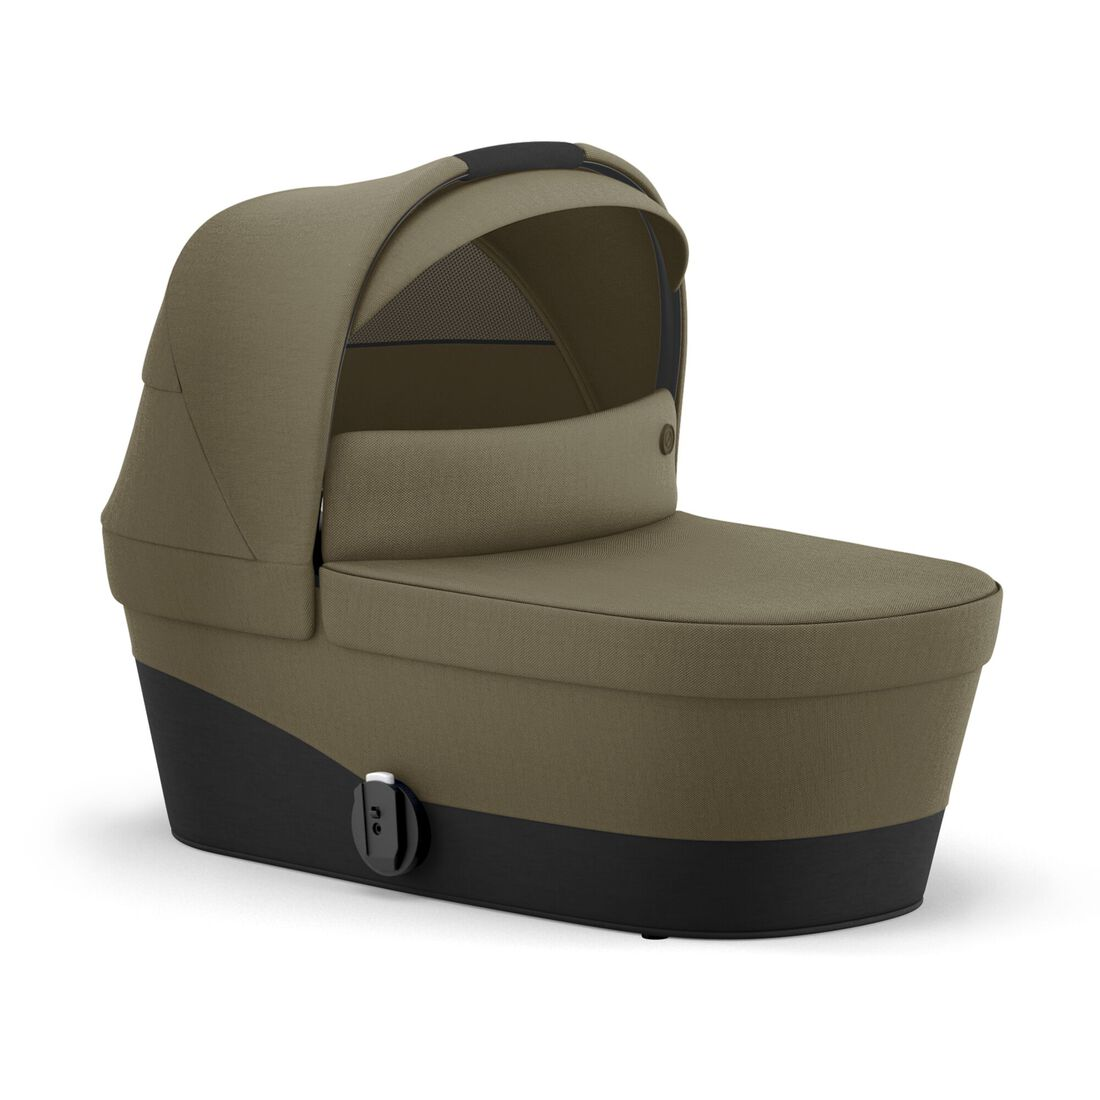 CYBEX Gazelle S Cot - Classic Beige in Classic Beige large image number 1